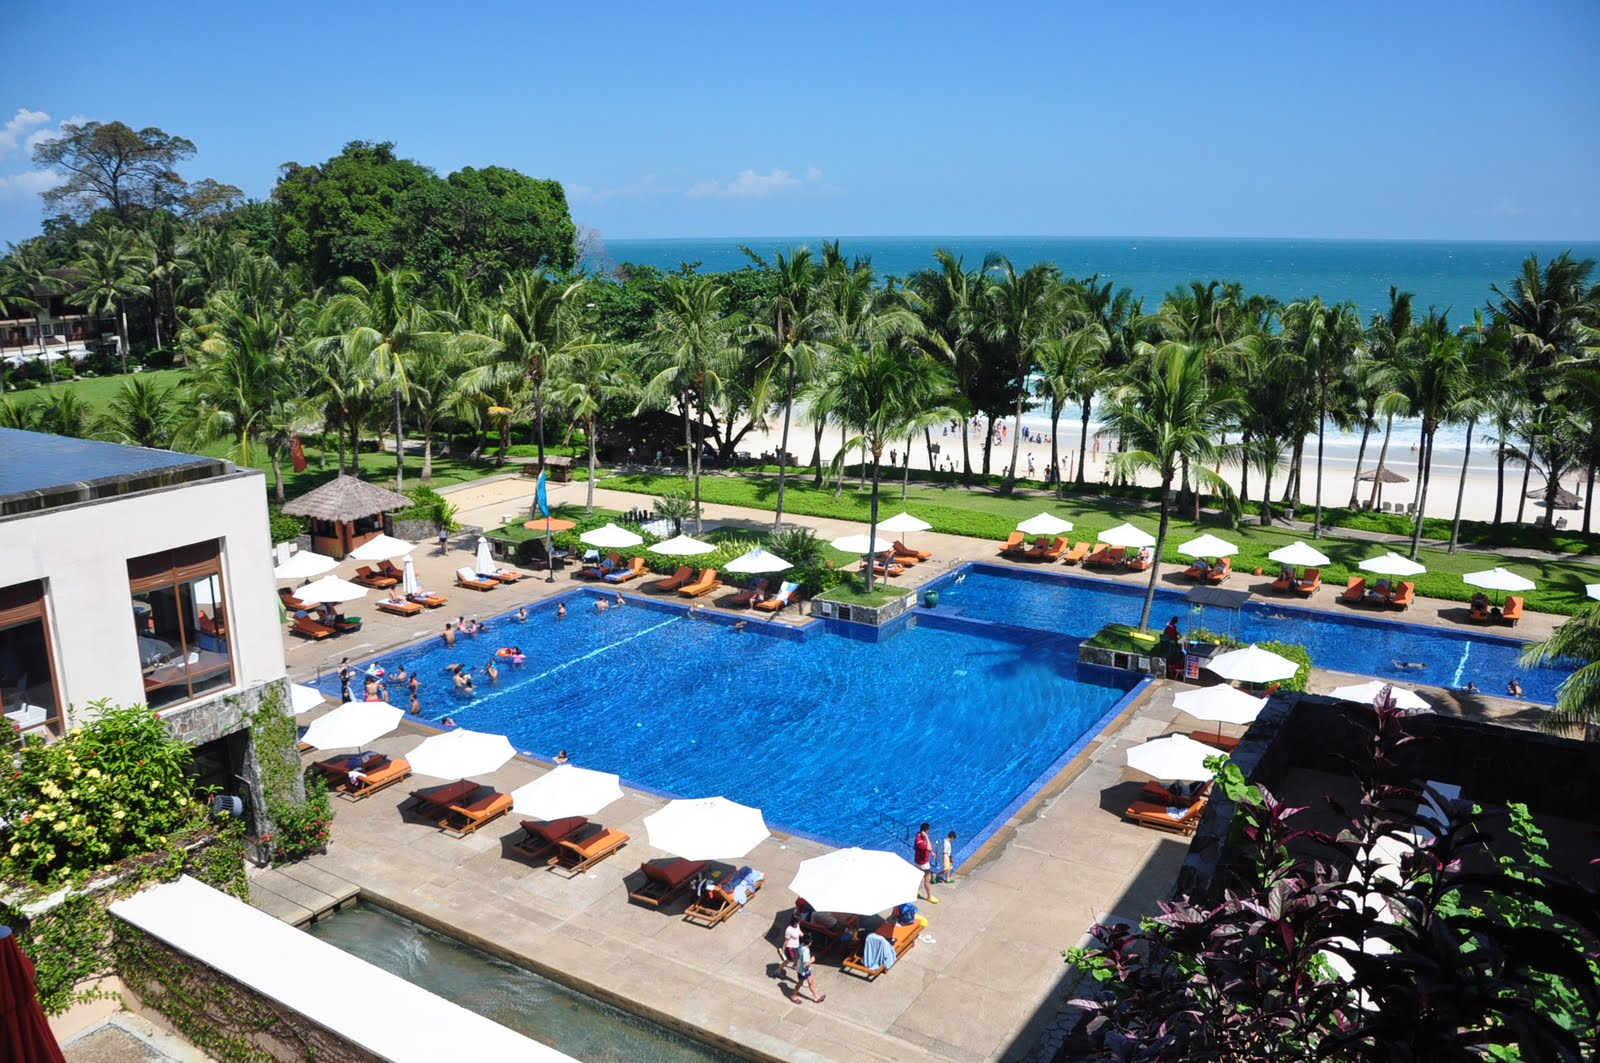 fun  natural forests  rest and recreation for the whole family  Nirwana  Gardens is also where the annual Tour de Bintan has its Headquarters. Nirwana Gardens  A Perfect Place for Your Holiday   Indonesia